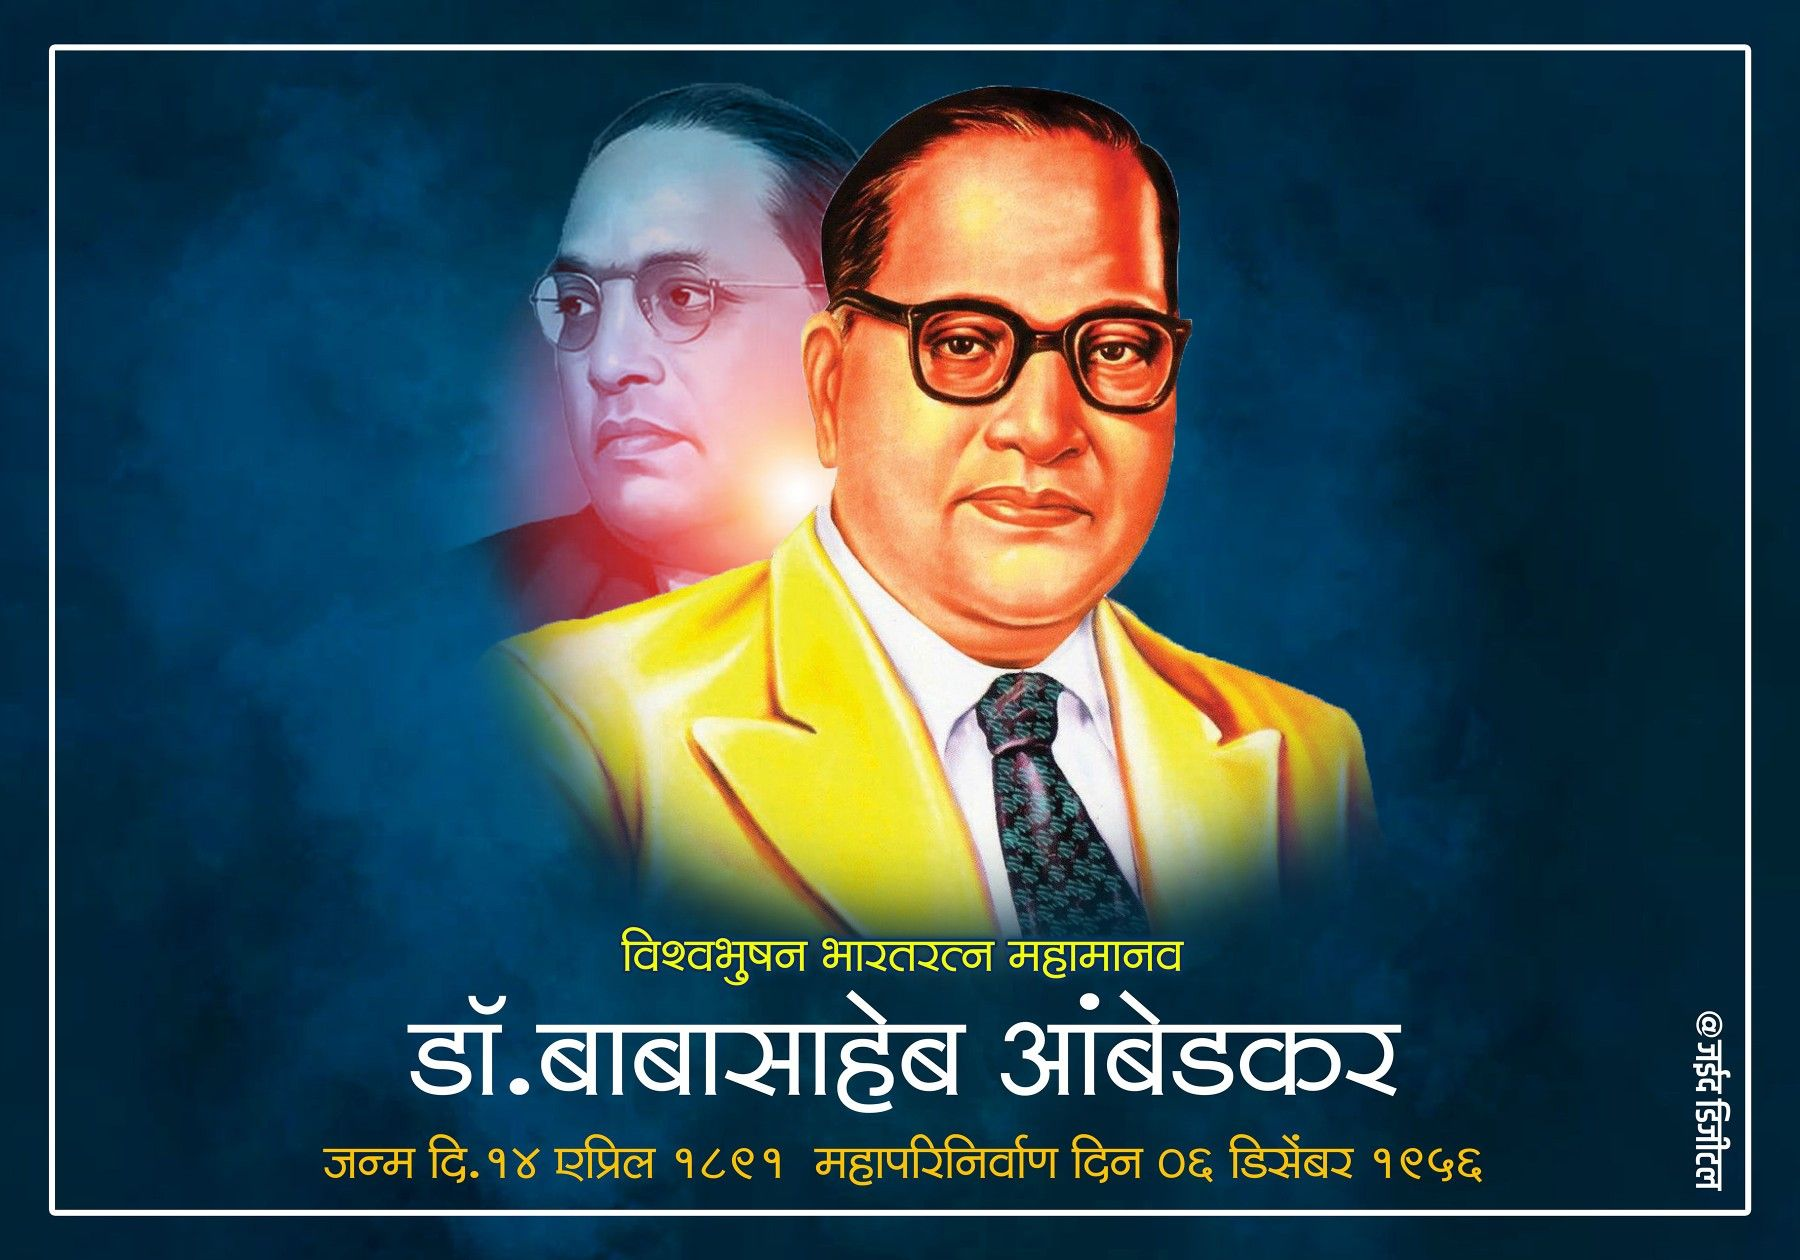 Babasaheb Ambedkar Jayanti - Thousands of letters have been received at Chaityabhoomi and Dadar Post Office